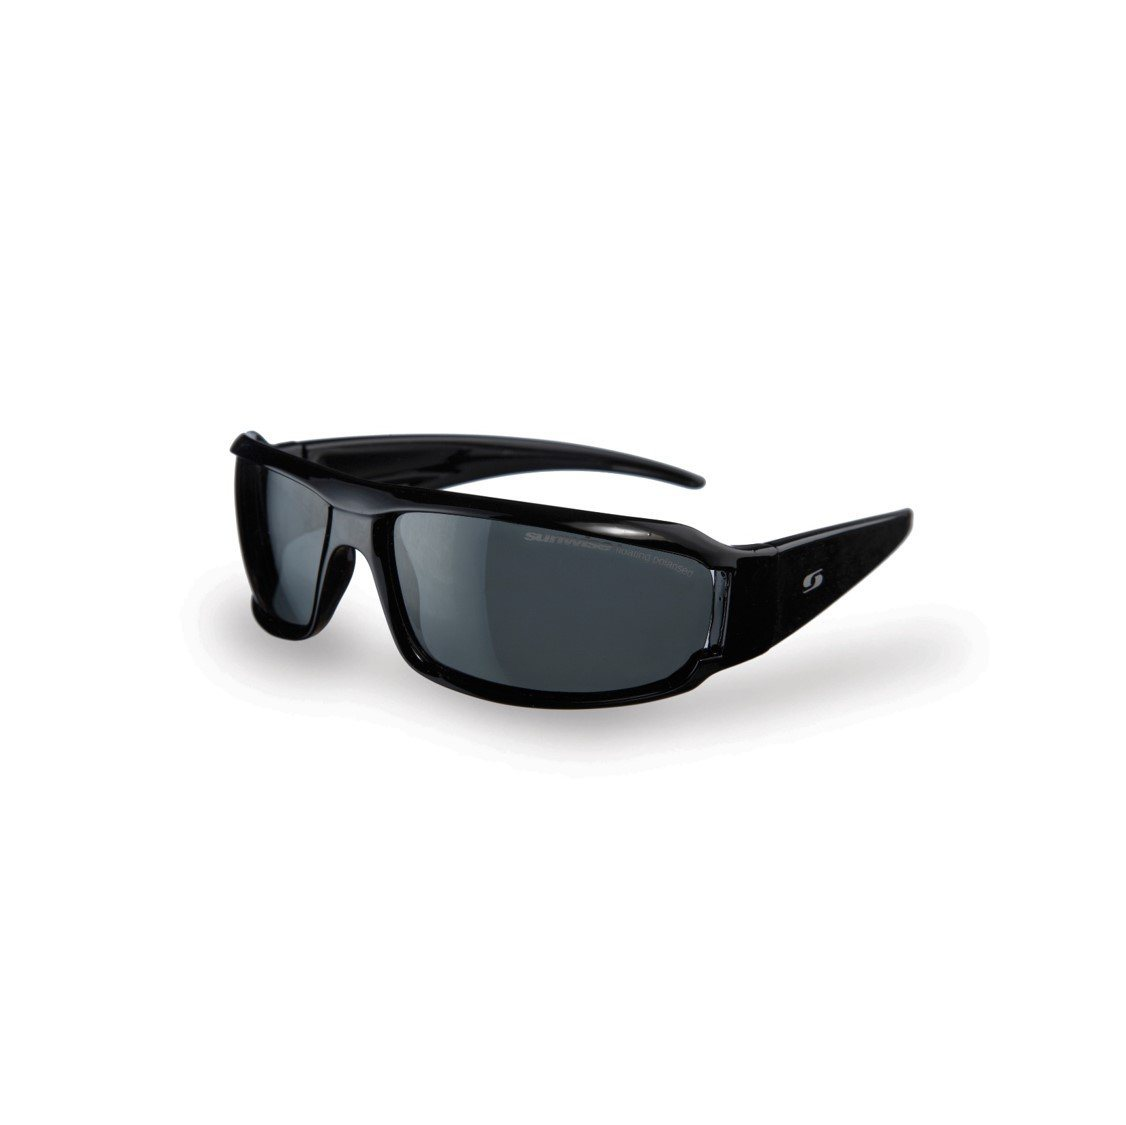 Sunwise Henley Black Sunglasses SUNGLASSES SUNWISE